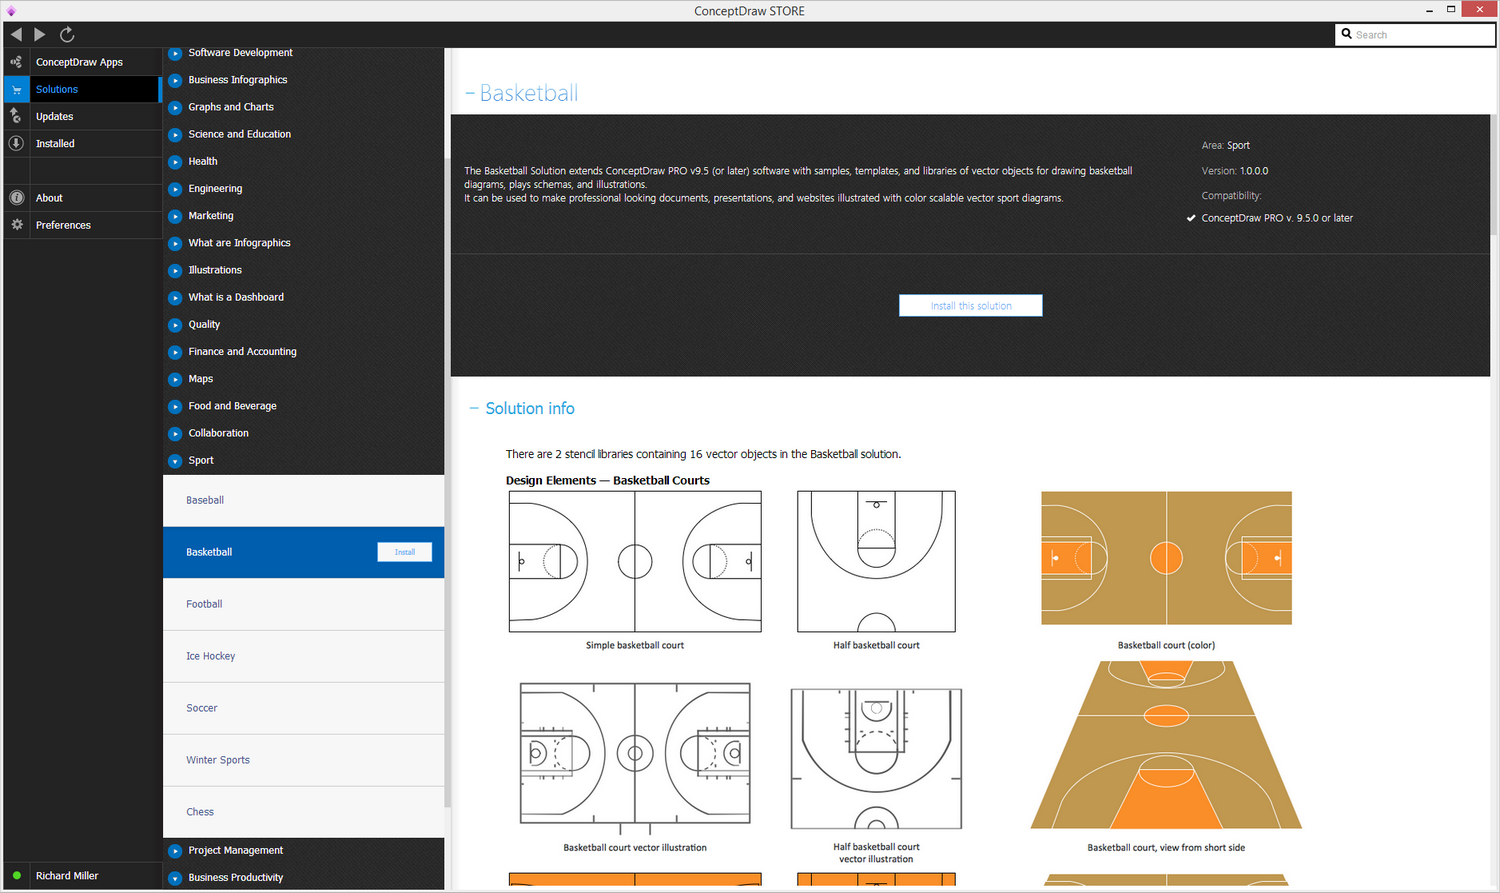 Basketball solution - Install